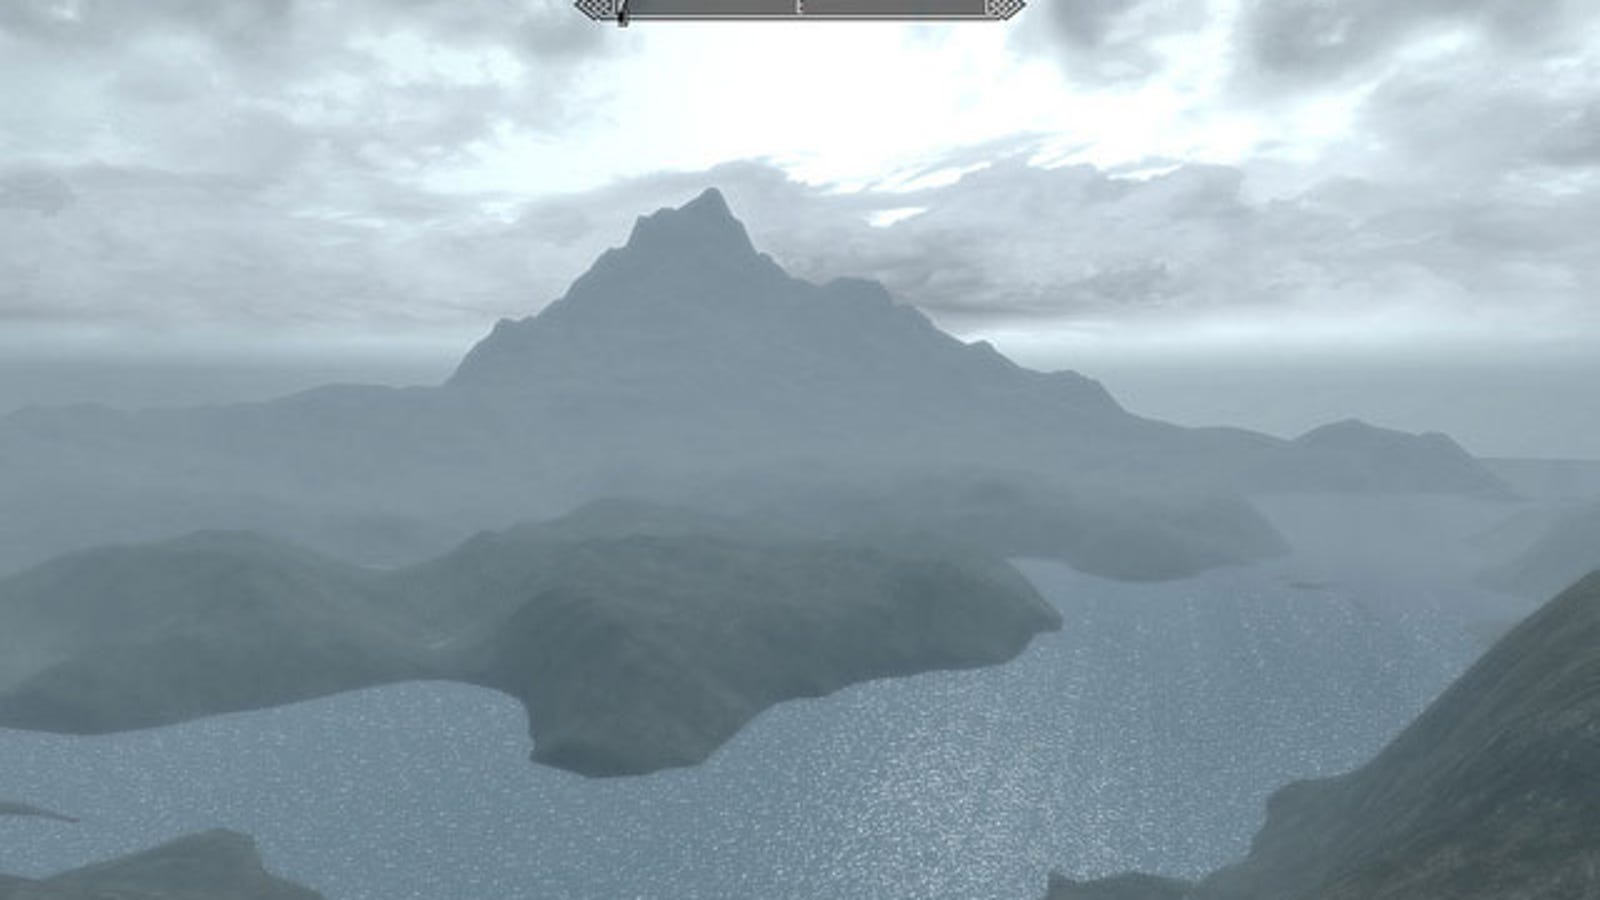 Why You Can See Morrowind From Skyrim